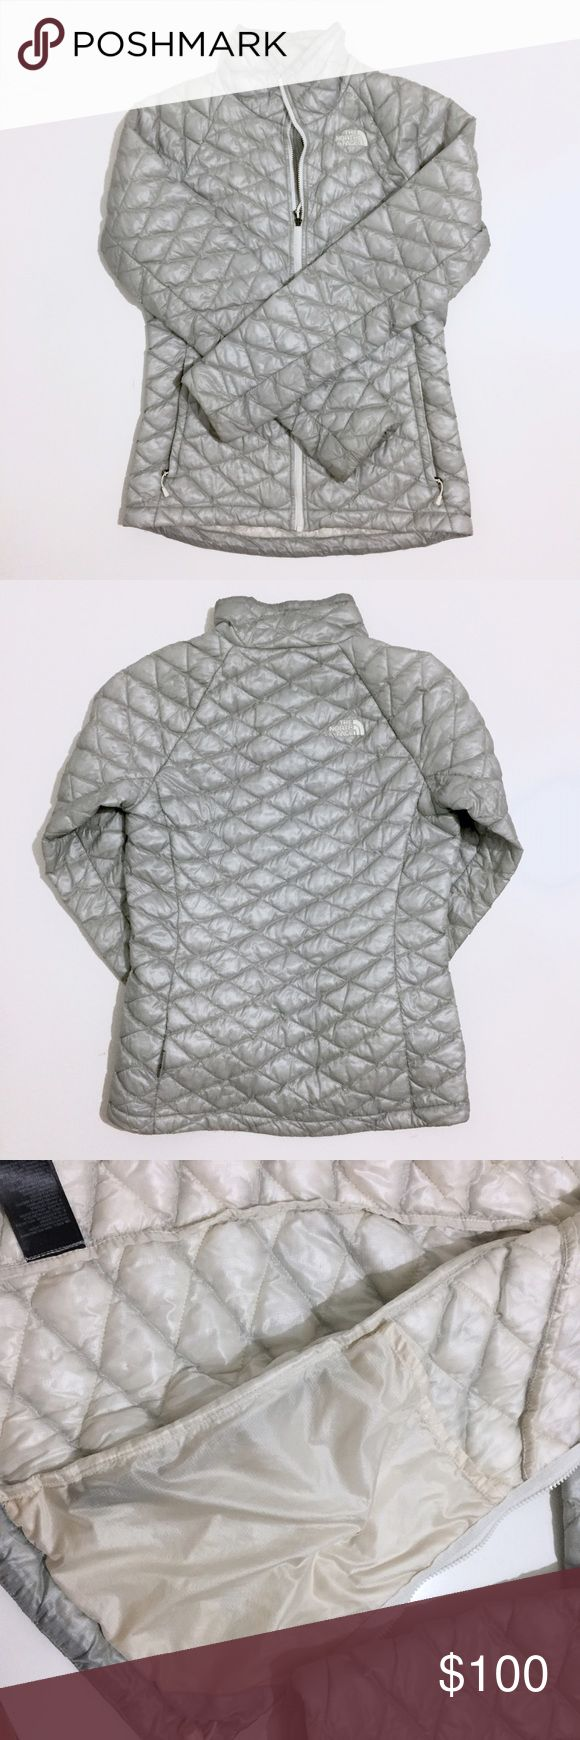 North Face Thermoball Jacket XS Even when it's 40 degrees outside, this jacket will totally keep you warm without even having to wear a sweater underneath and it's extremely lightweight! Worn only a handful of times but still in super excellent condition. North Face Jackets & Coats Puffers